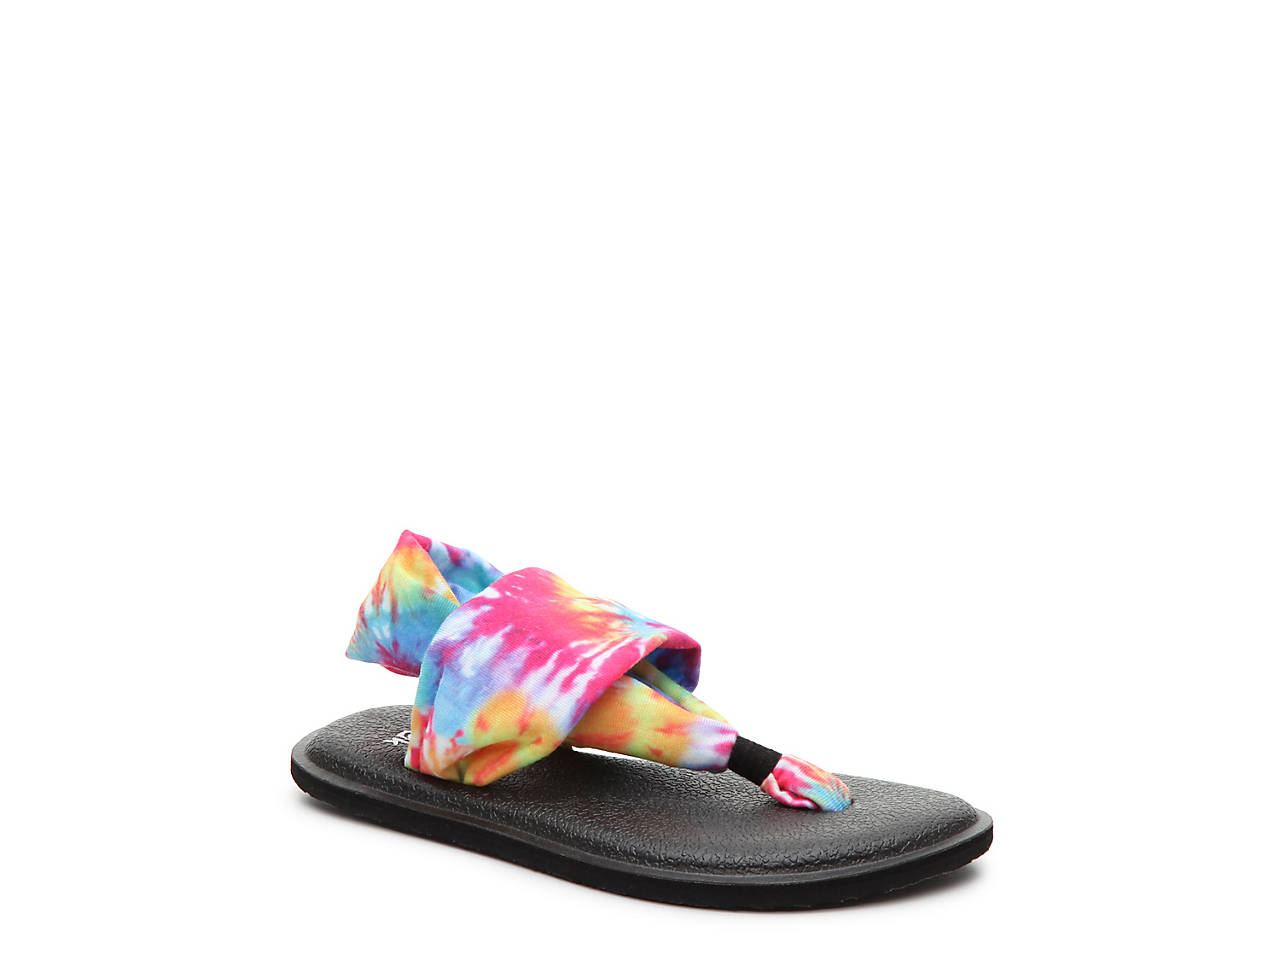 945046338ca2 Sanuk Lil Yoga Sling Tie Dye Youth Sandal Kids Shoes